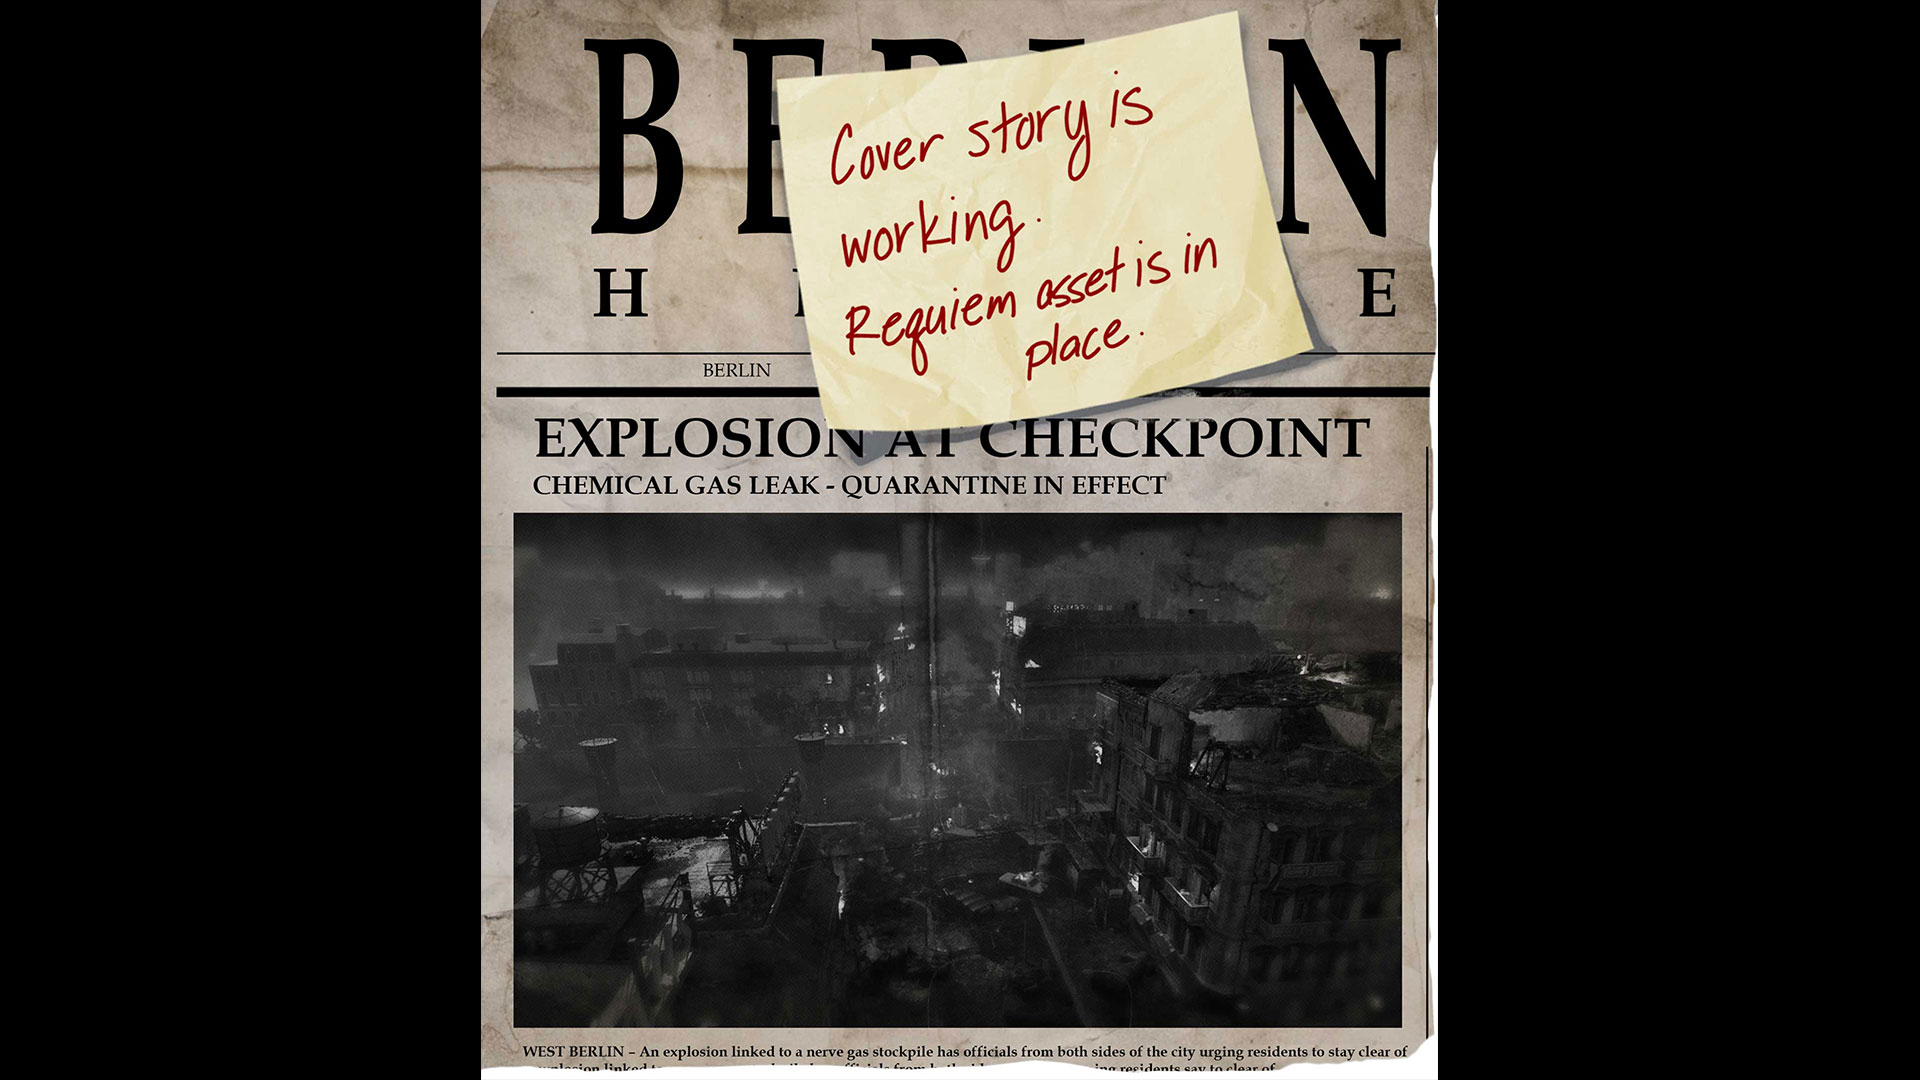 """Newspaper clipping with sticky note on top that reads """"Cover story is working. Requiem asset is in place."""""""